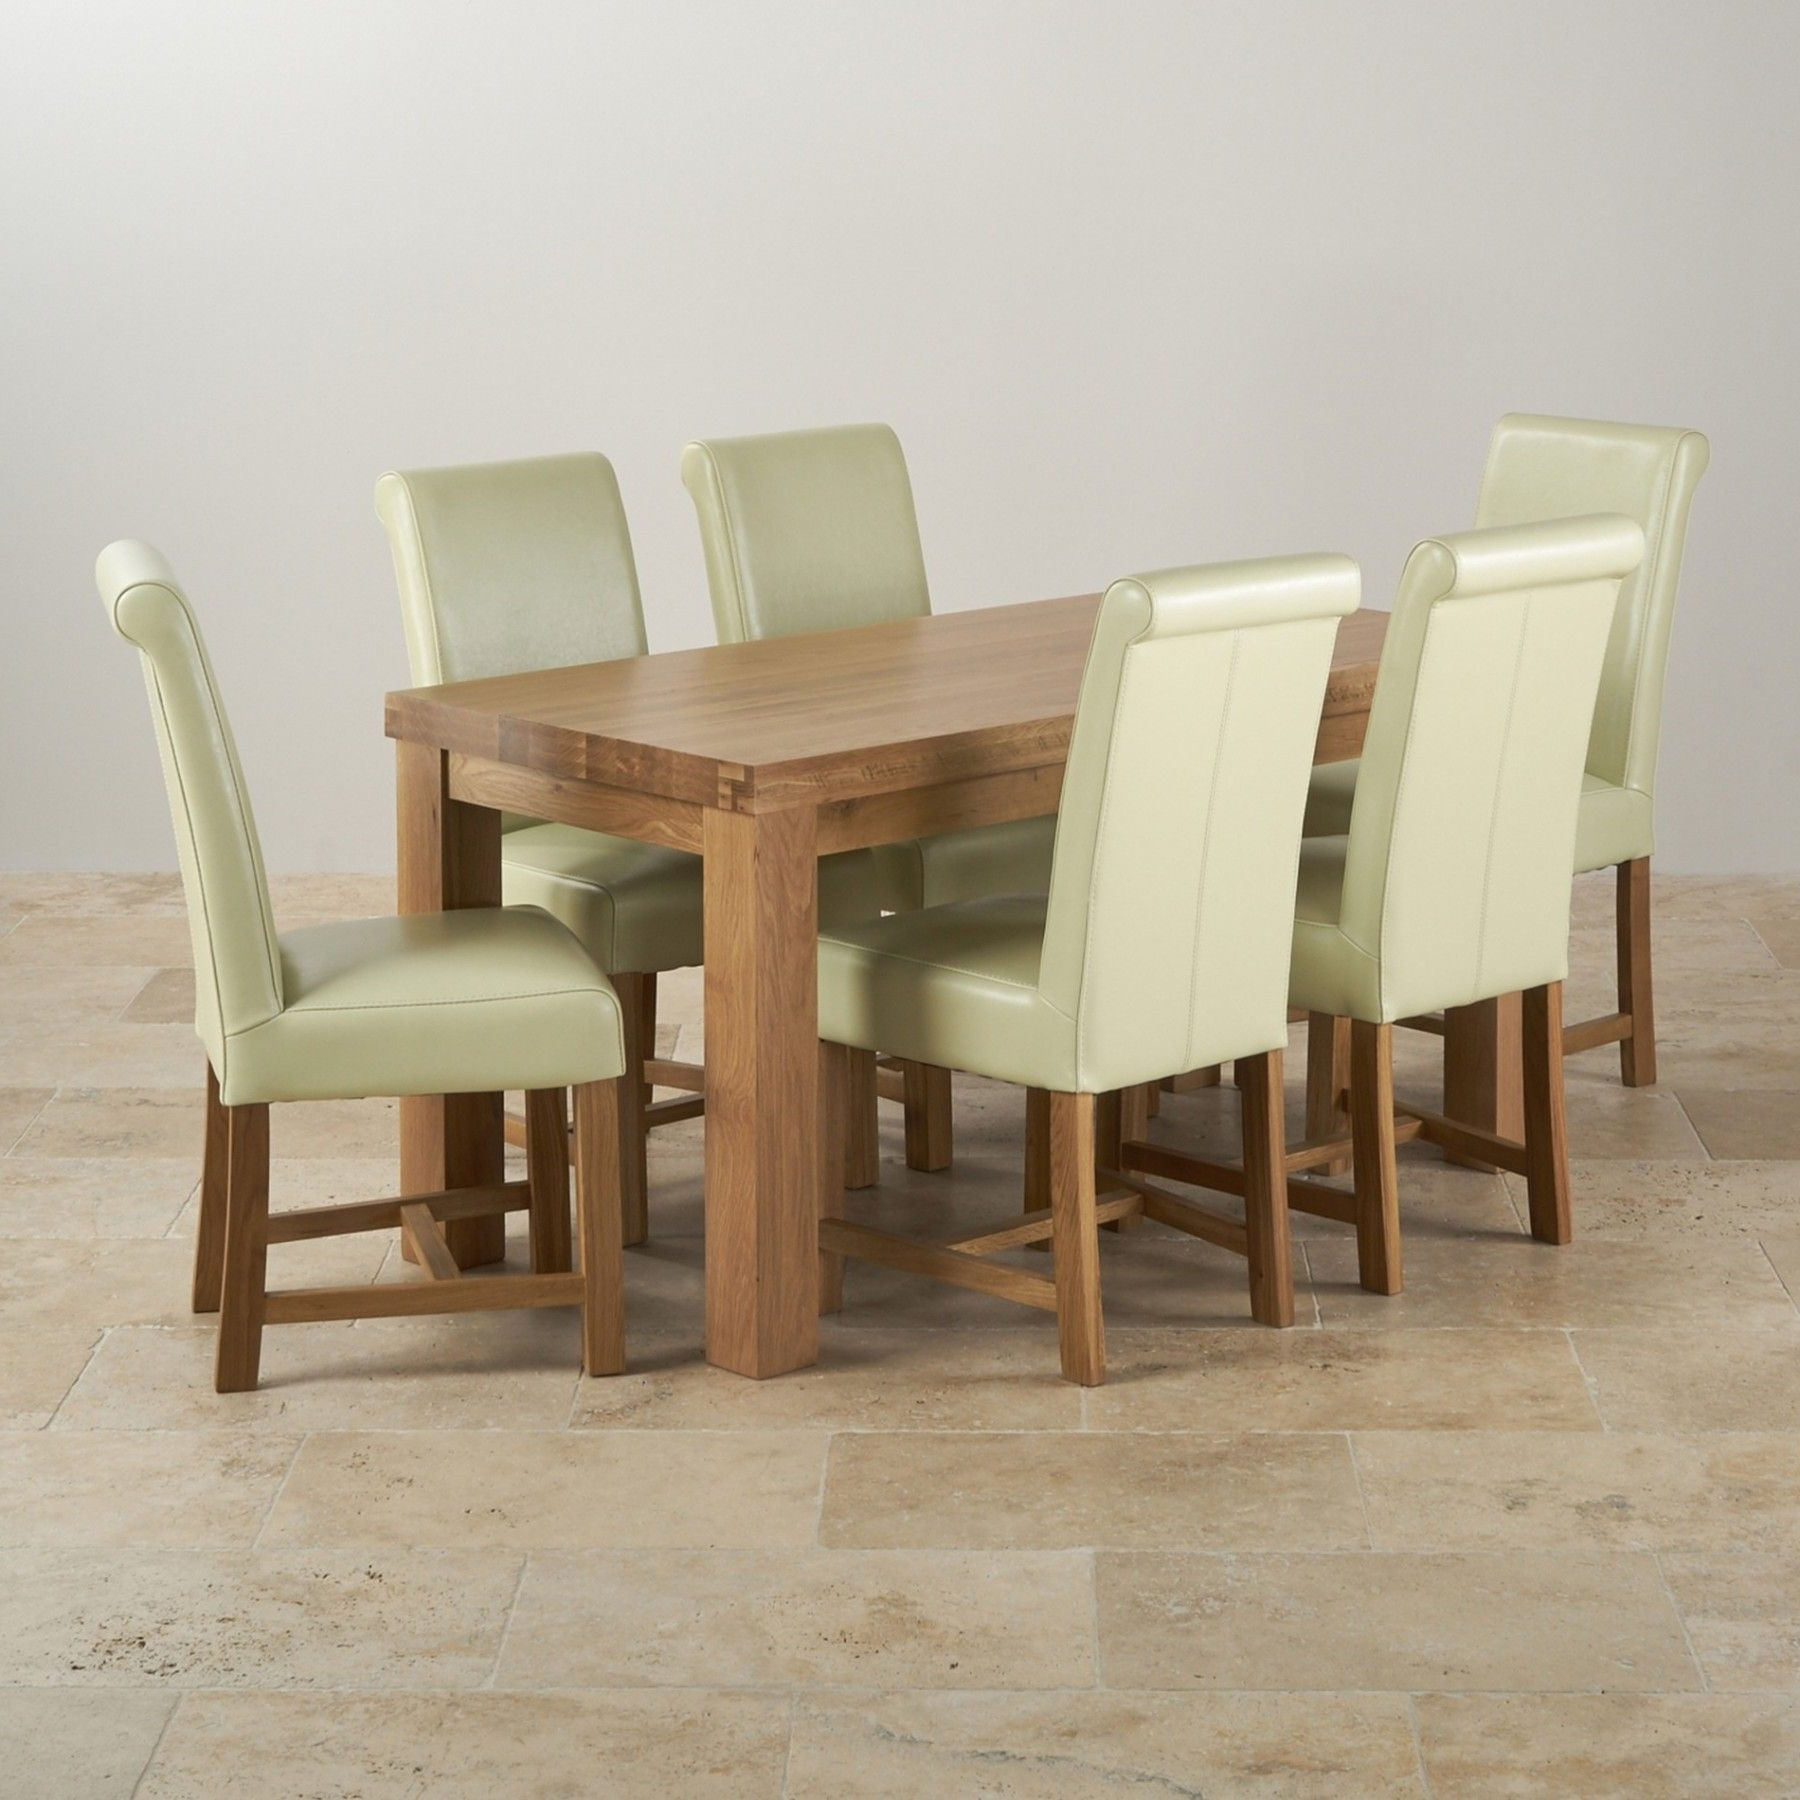 2017 This Modern Dining Set Consists Of A Chunky 5Ft Dining Table And 6 Within Cream And Wood Dining Tables (Gallery 15 of 25)